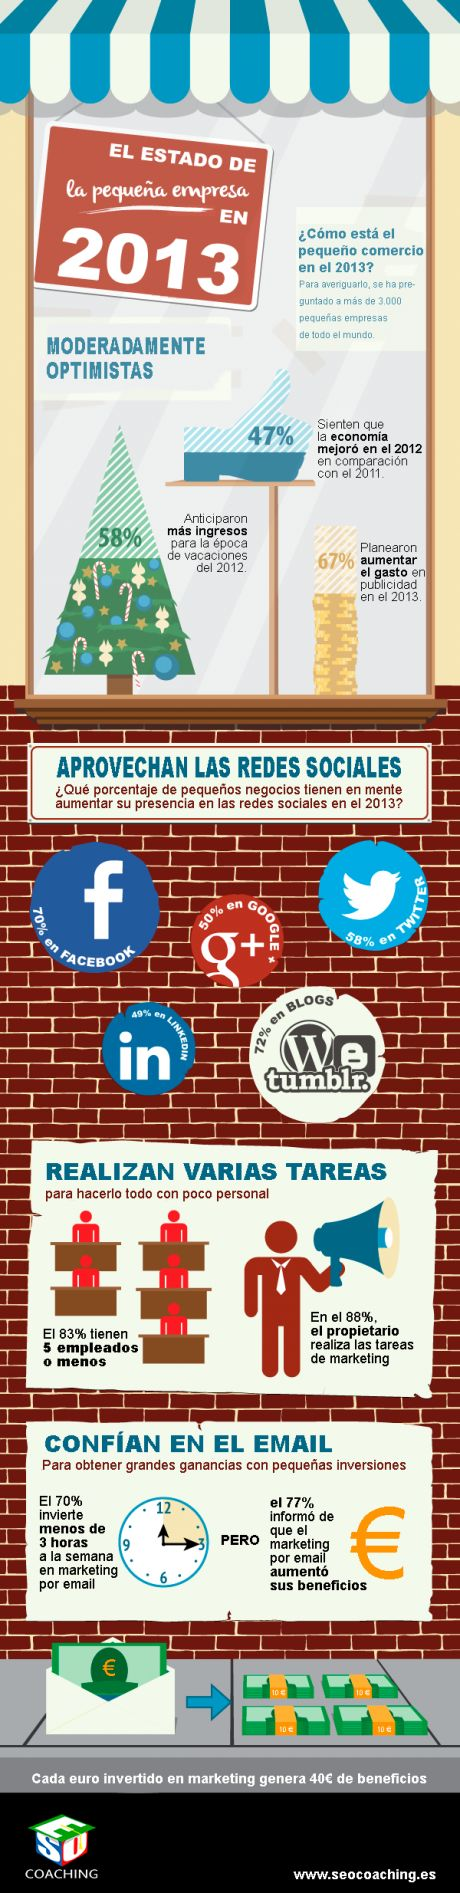 La pequeña empresa se mantiene a flote gracias a las estrategias de #marketingonline. El #socialmedia y el #marketingporemail son pilares básicos en su plan de #marketingdigital. #infografia @seocoaching360